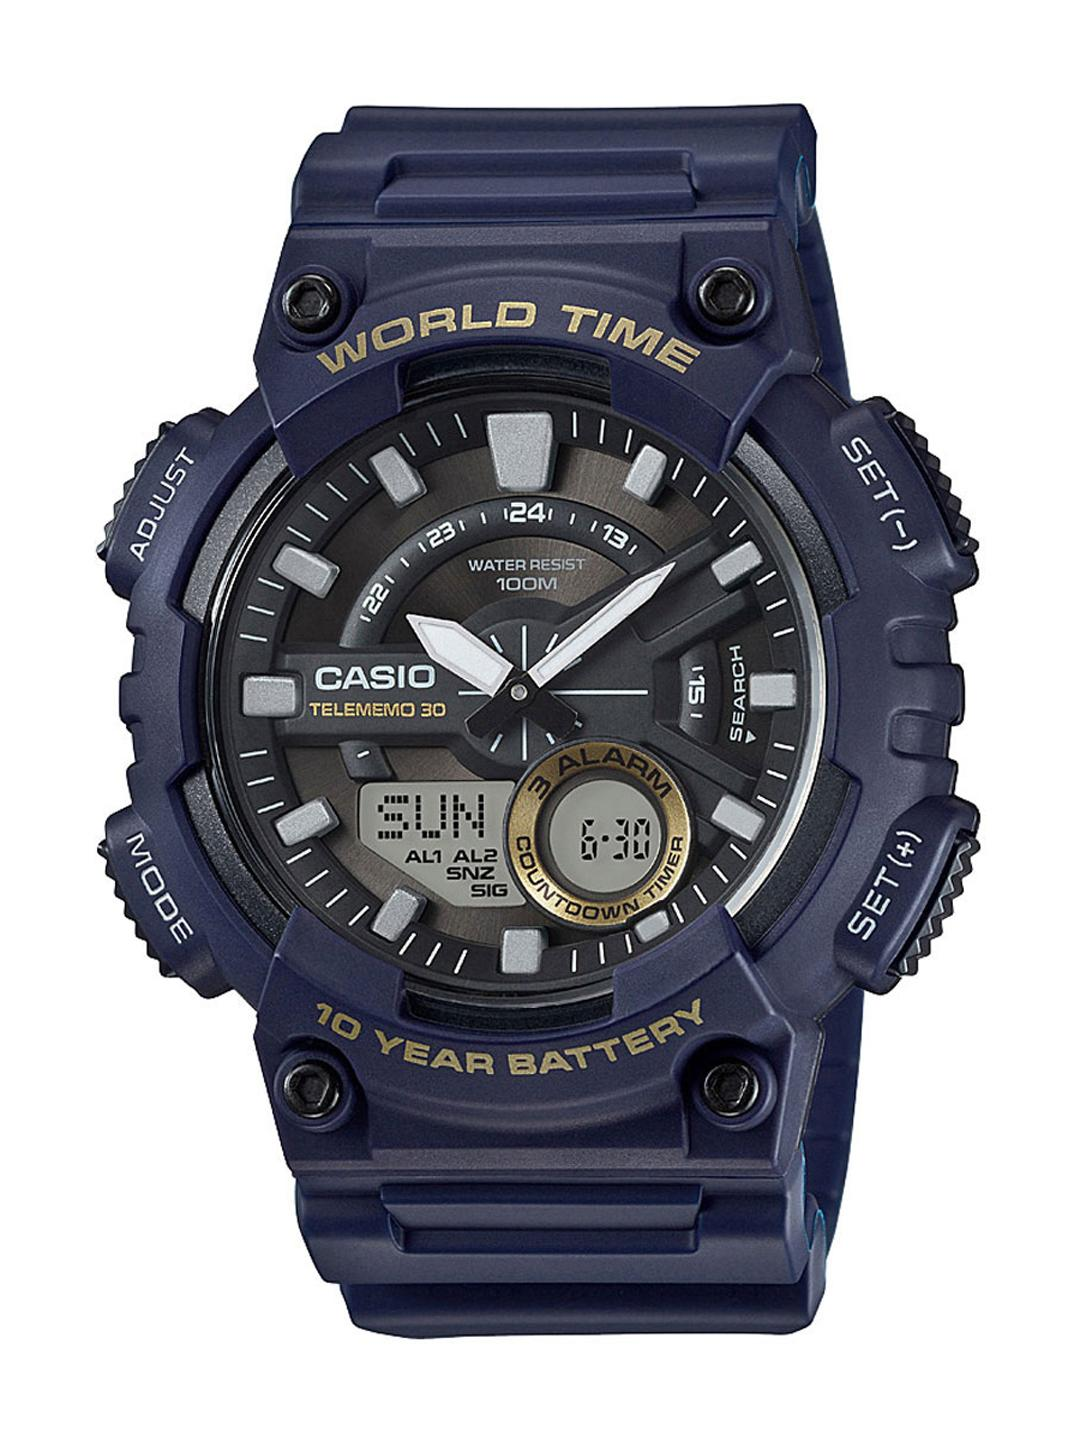 CASIO Youth Series Men Blue Dial Analog-Digital Watch AEQ-110W-2AVDF - AD208